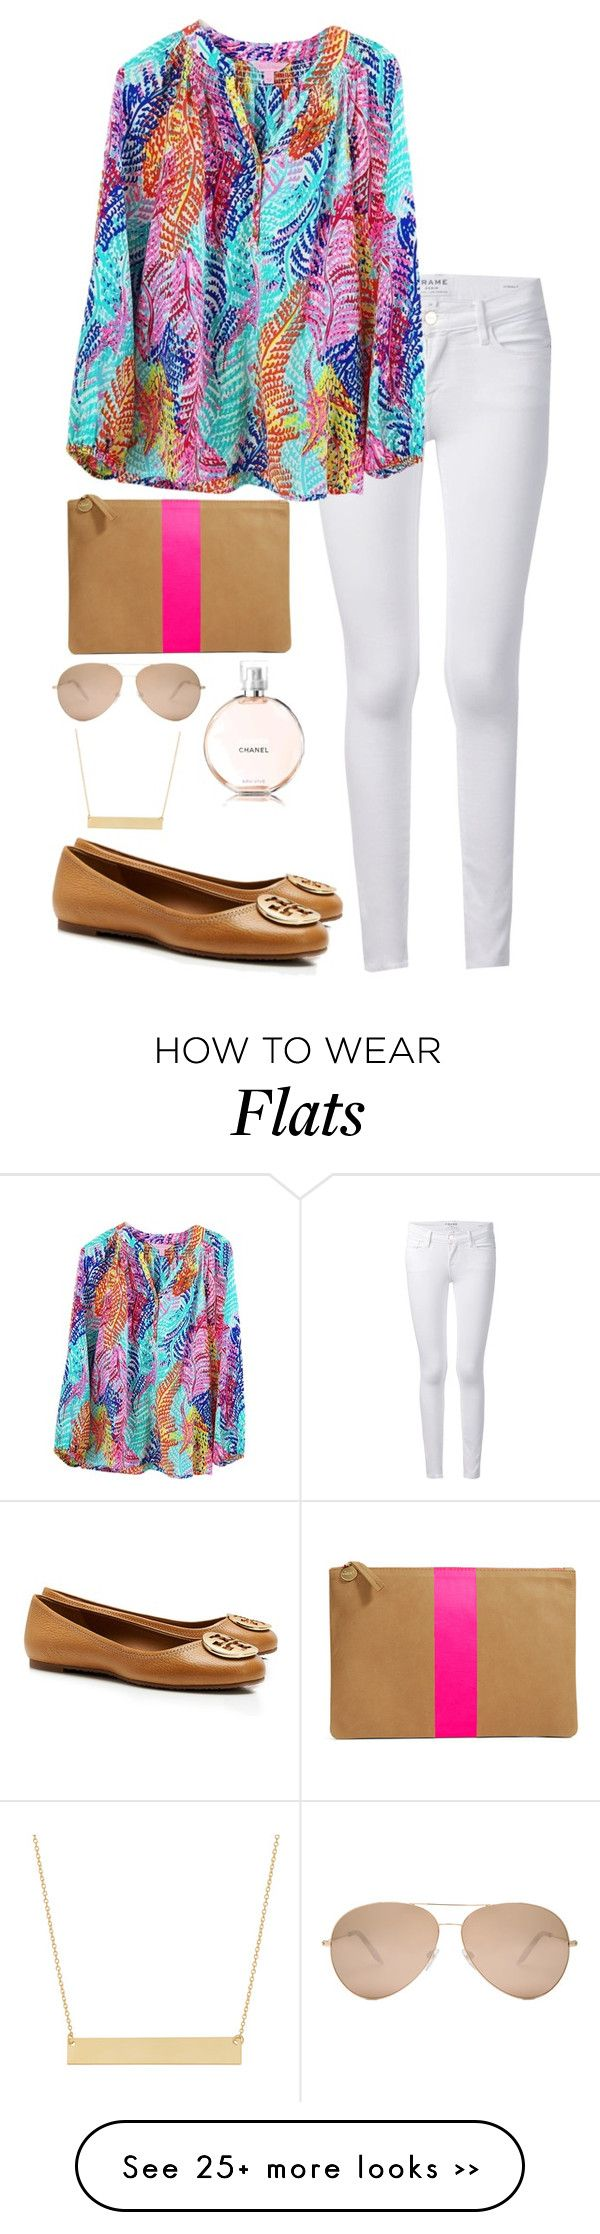 wear Polyvore Spring August      by and thepinkcatapillar     leather   patent Flats   to How Happy purses on Flats      Happy